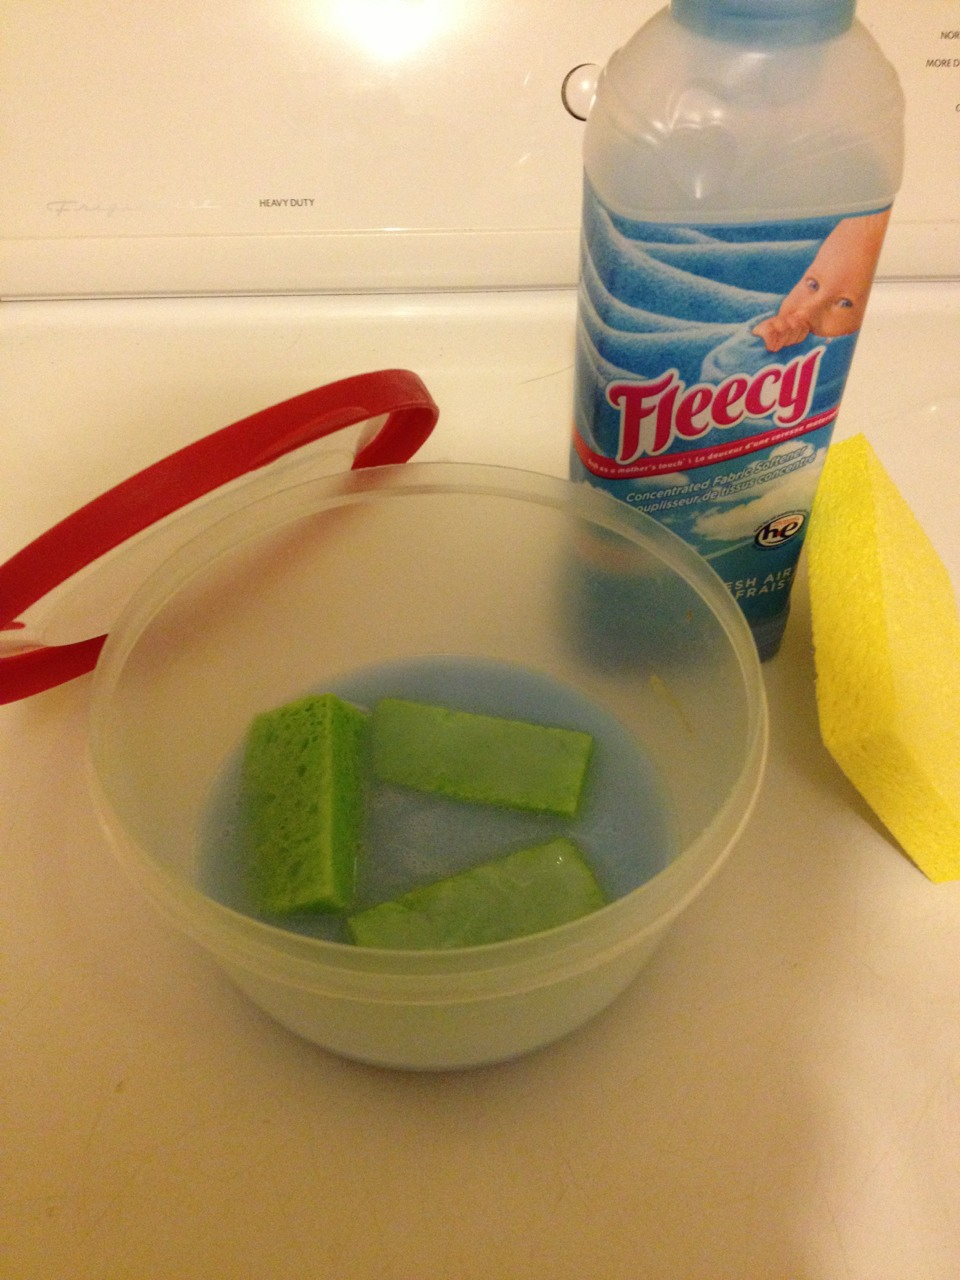 cut up a regular sponge and submerge it into a container of concentrated fabric softener.